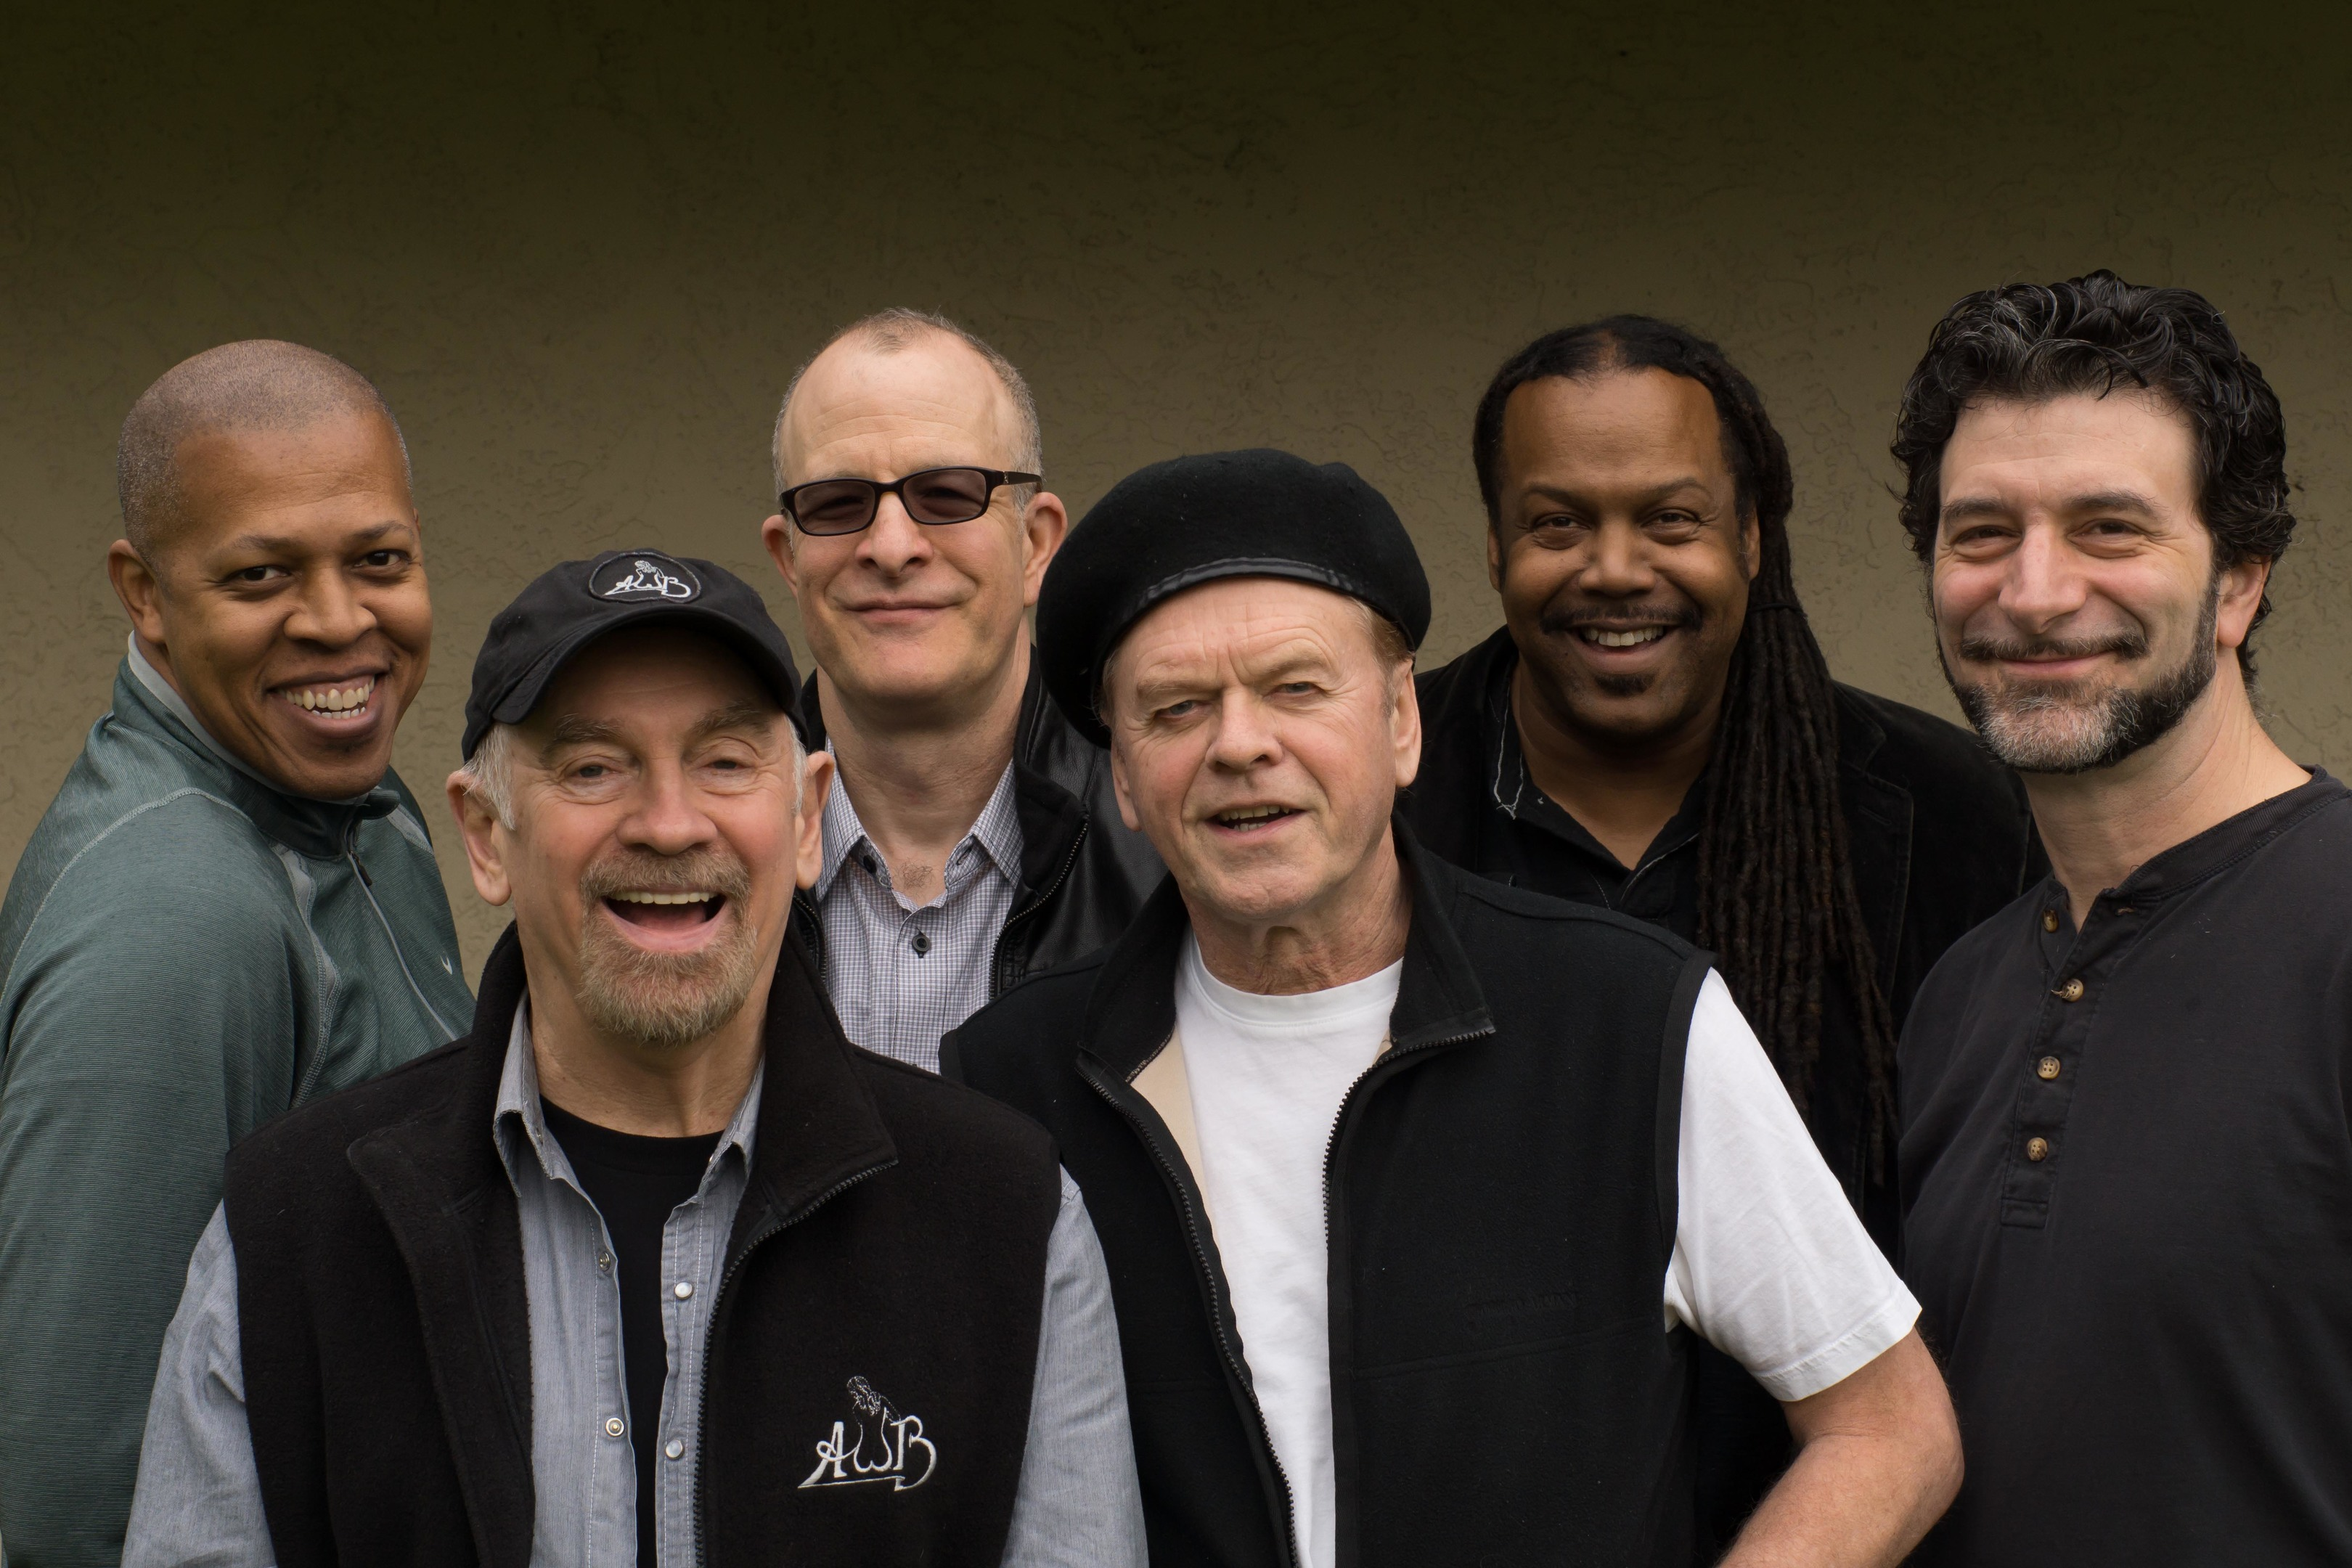 The Average White Band.